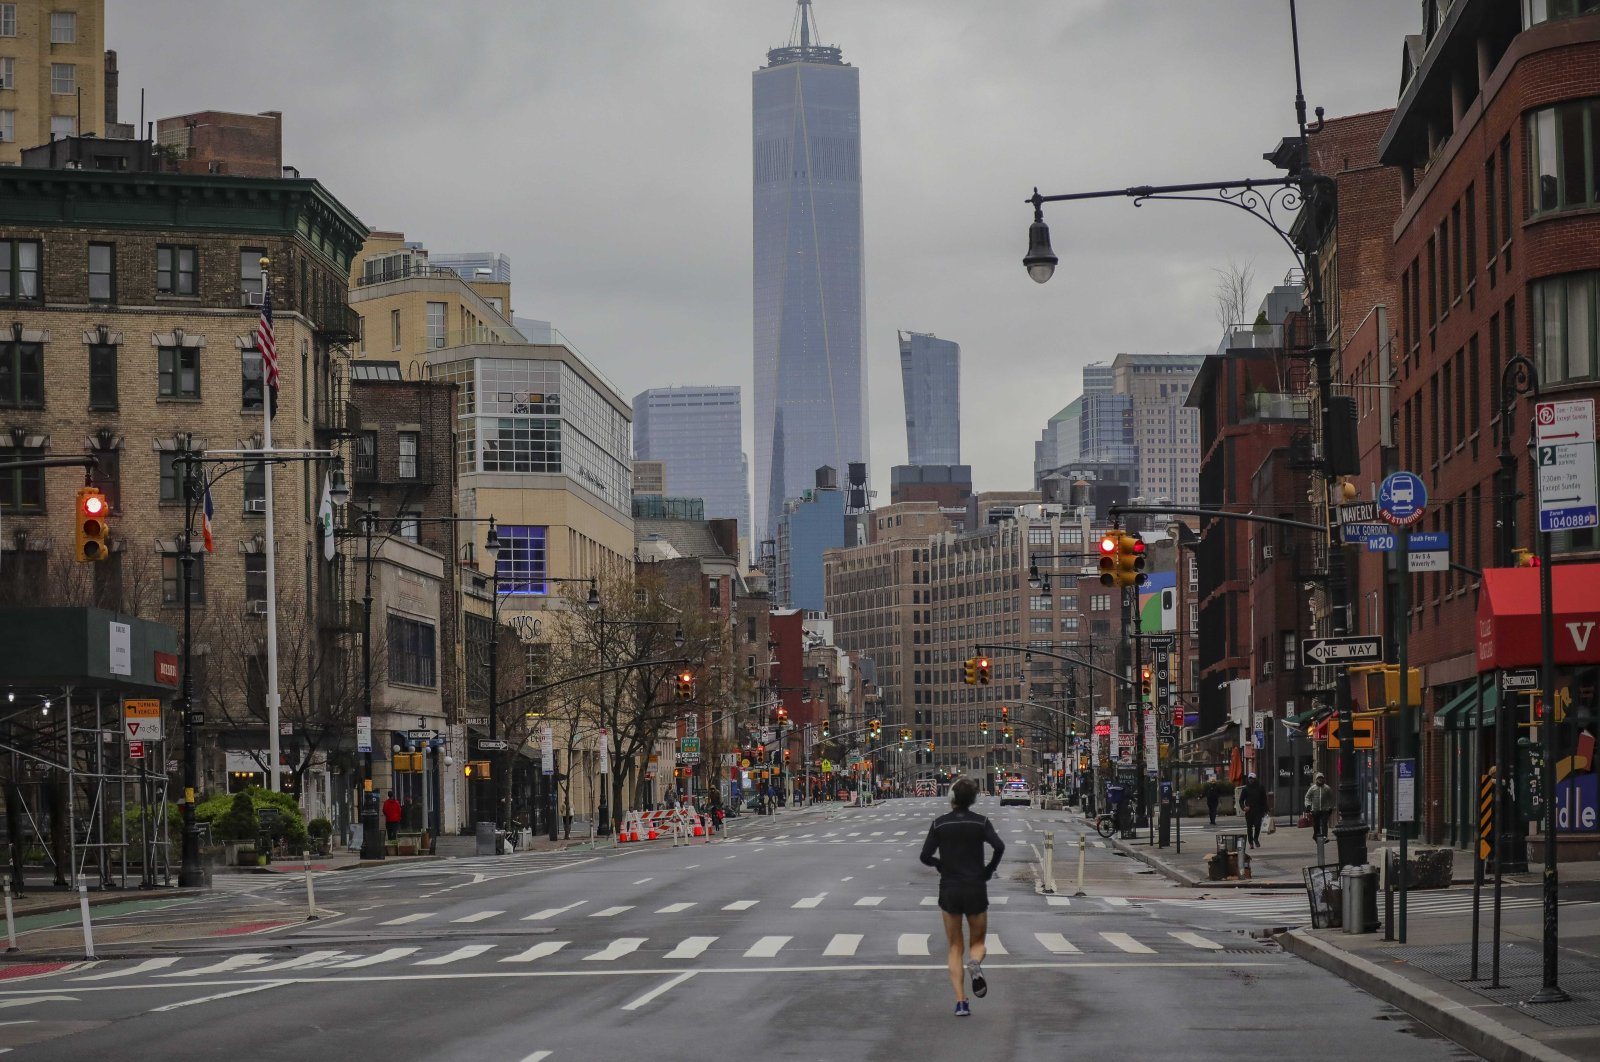 A lone jogger run on a partially empty 7th Avenue, resulting from citywide restrictions calling for people to stay indoors and maintain social distancing in an effort to curb the spread of COVID-19, in New York, Saturday, March 28, 2020. (AP Photo)